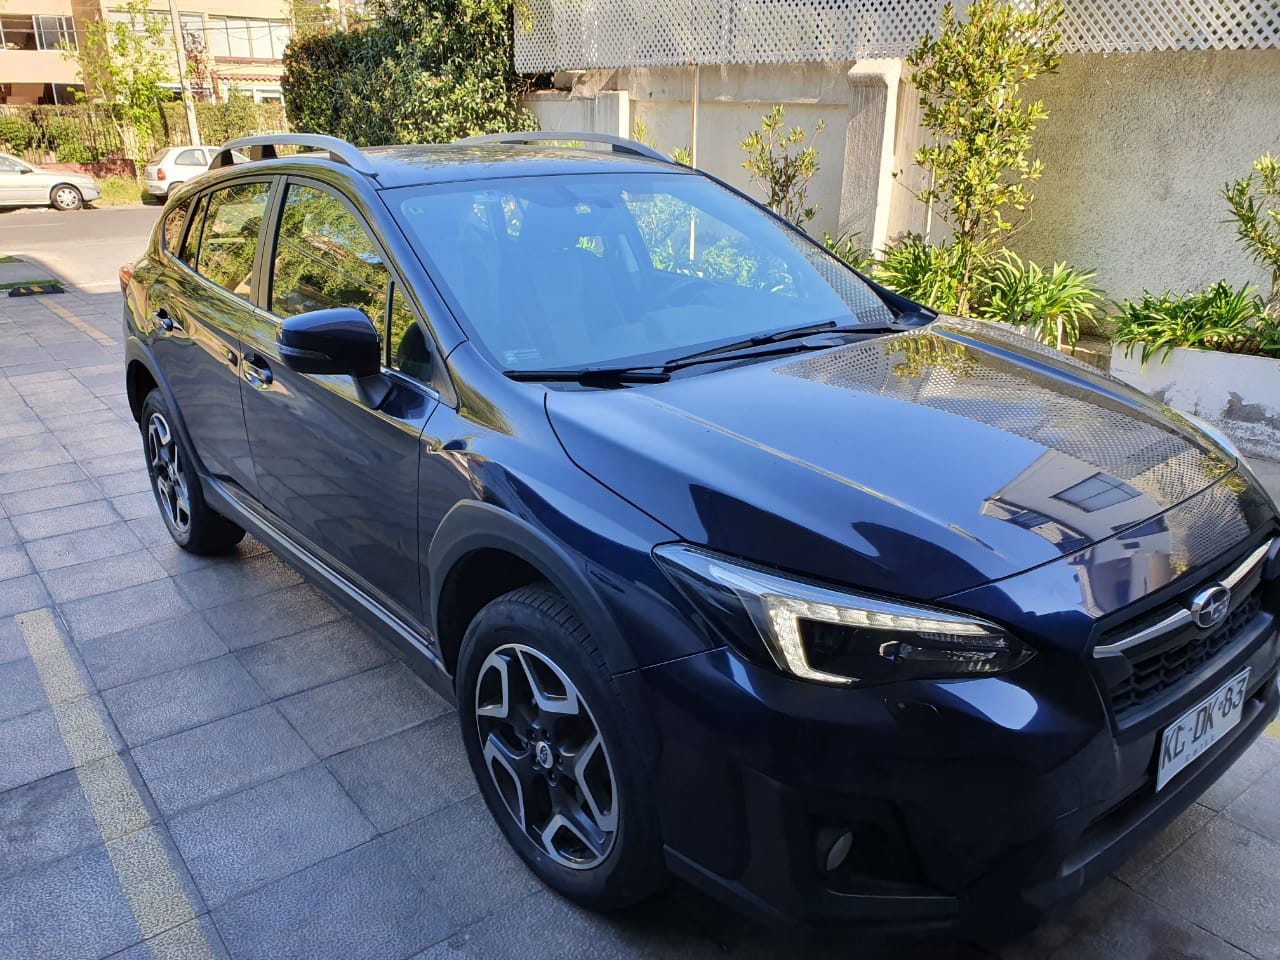 Subaru New XV 2.0 AWD DYNAMIC año 2018